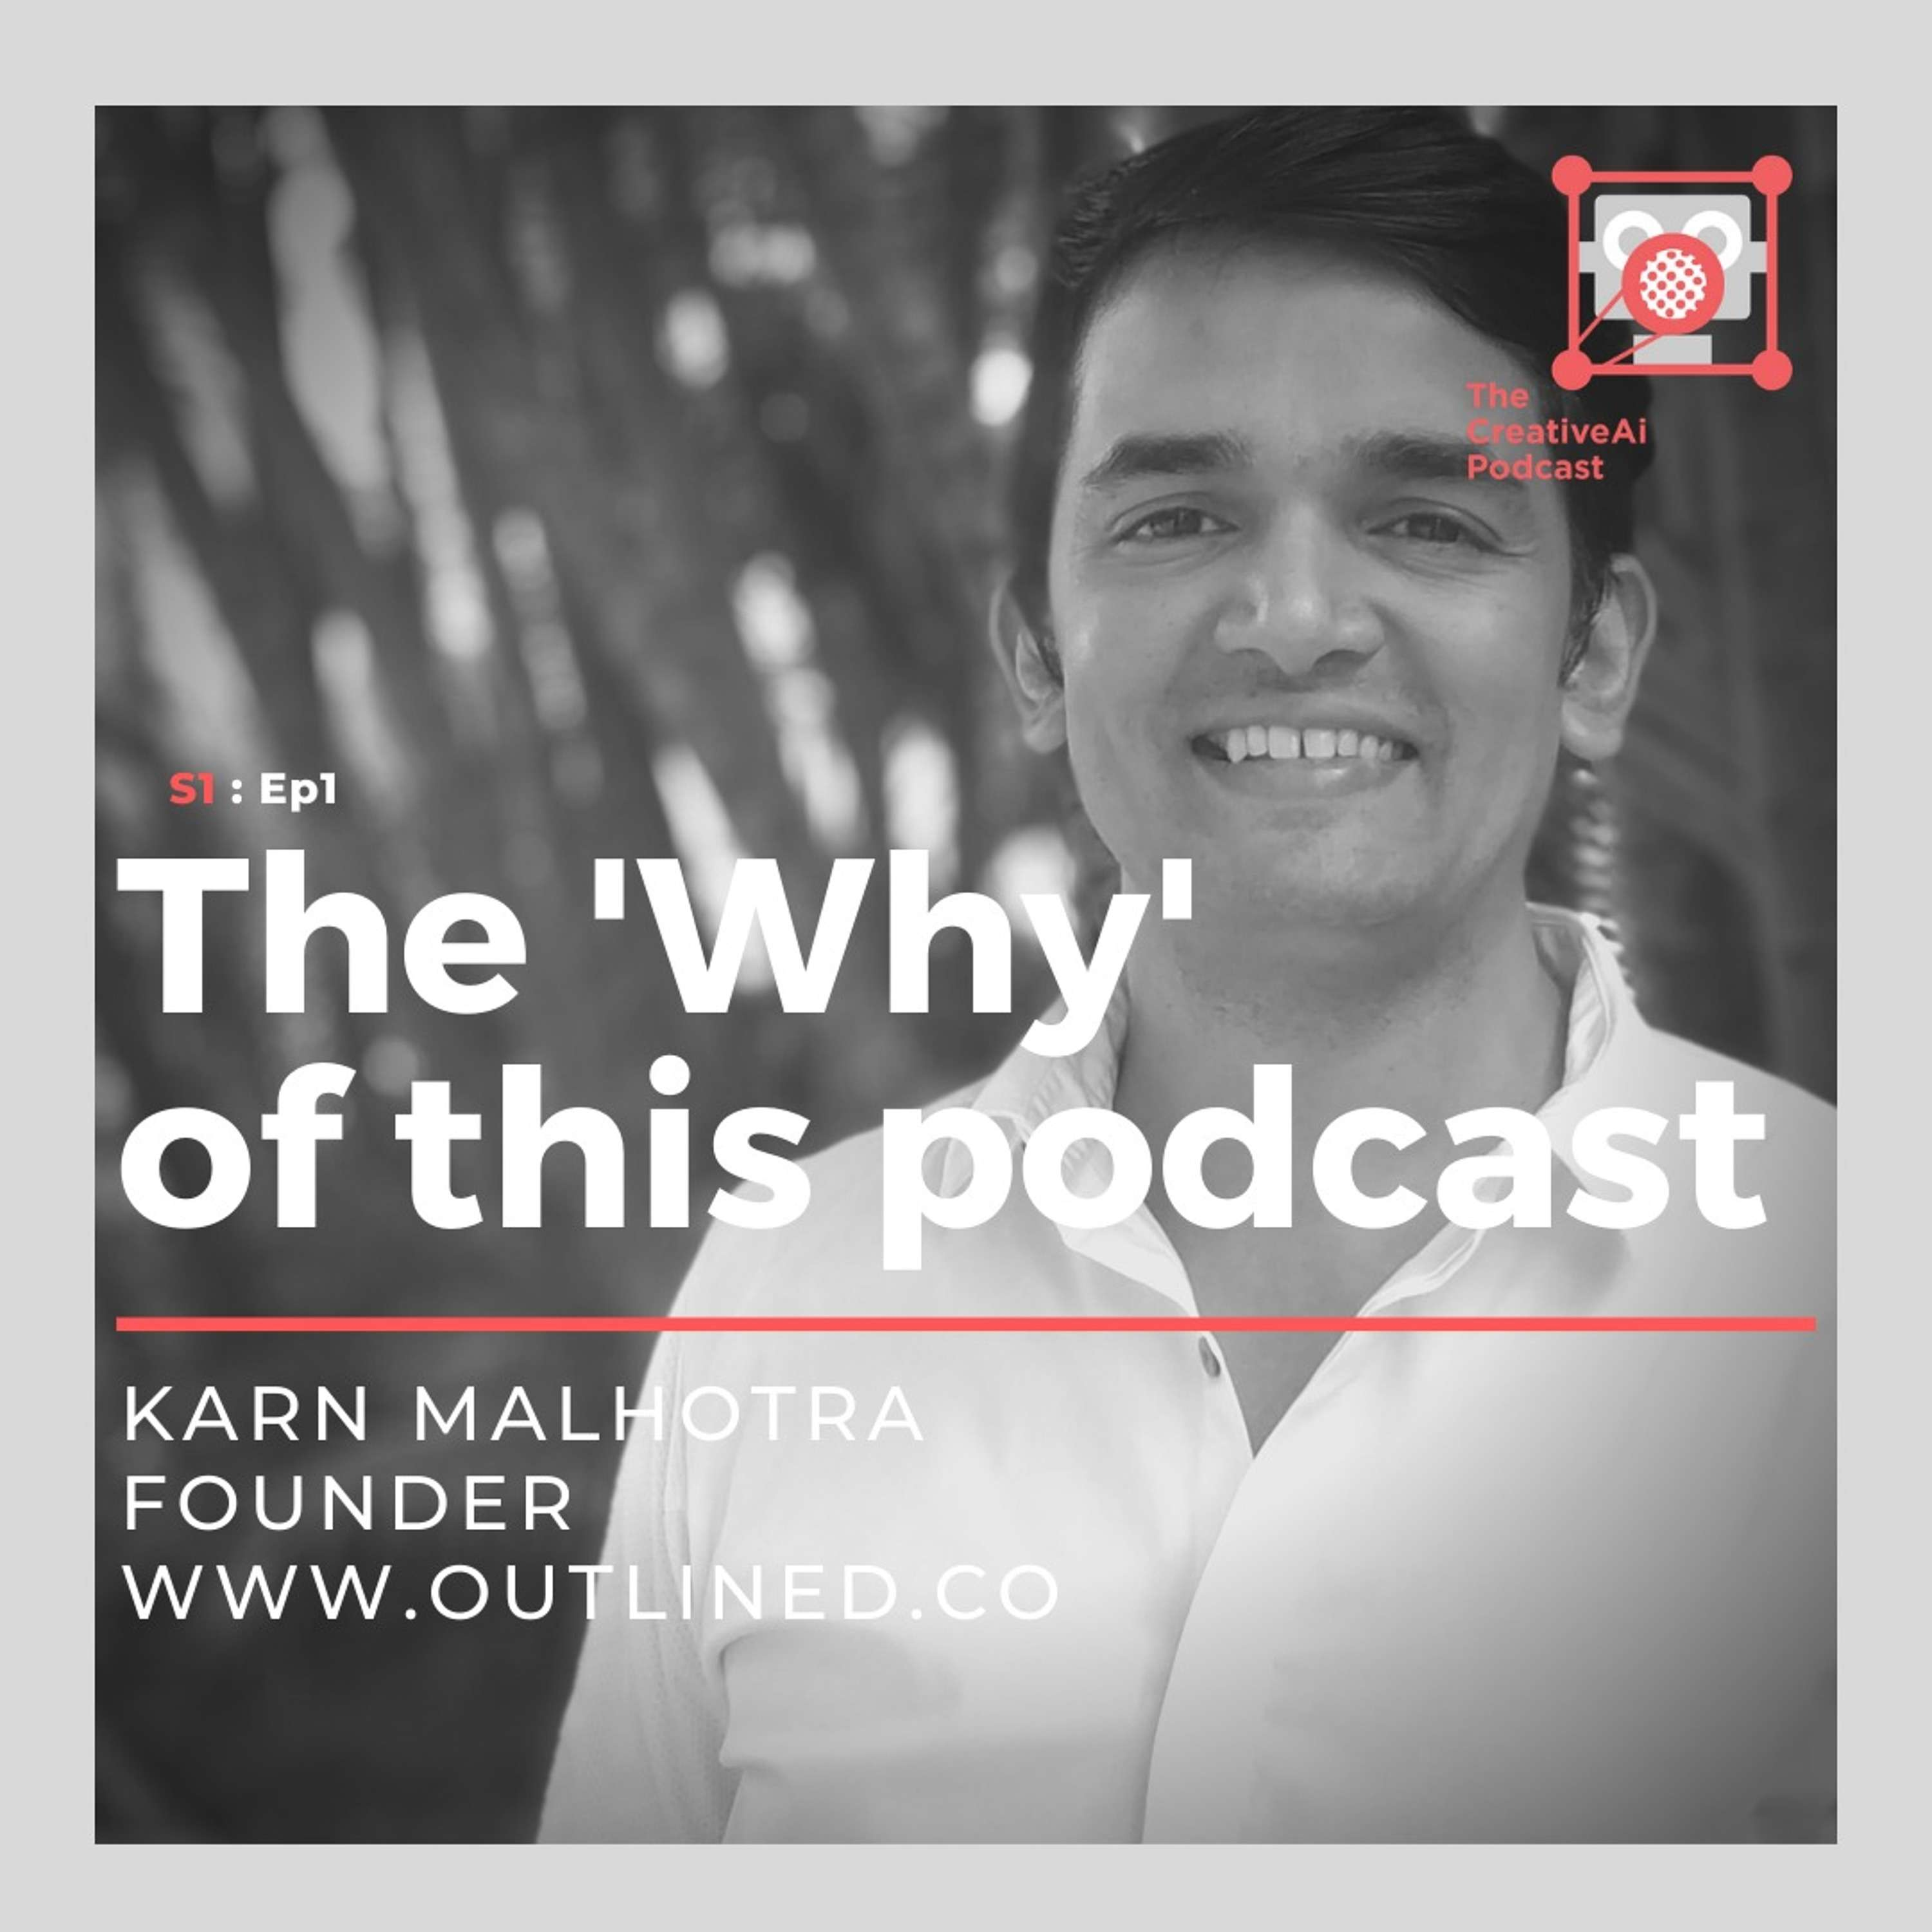 S1 : Ep1 - The Why of The CreativeAi Podcast with Karn Malhotra of Outlined.co